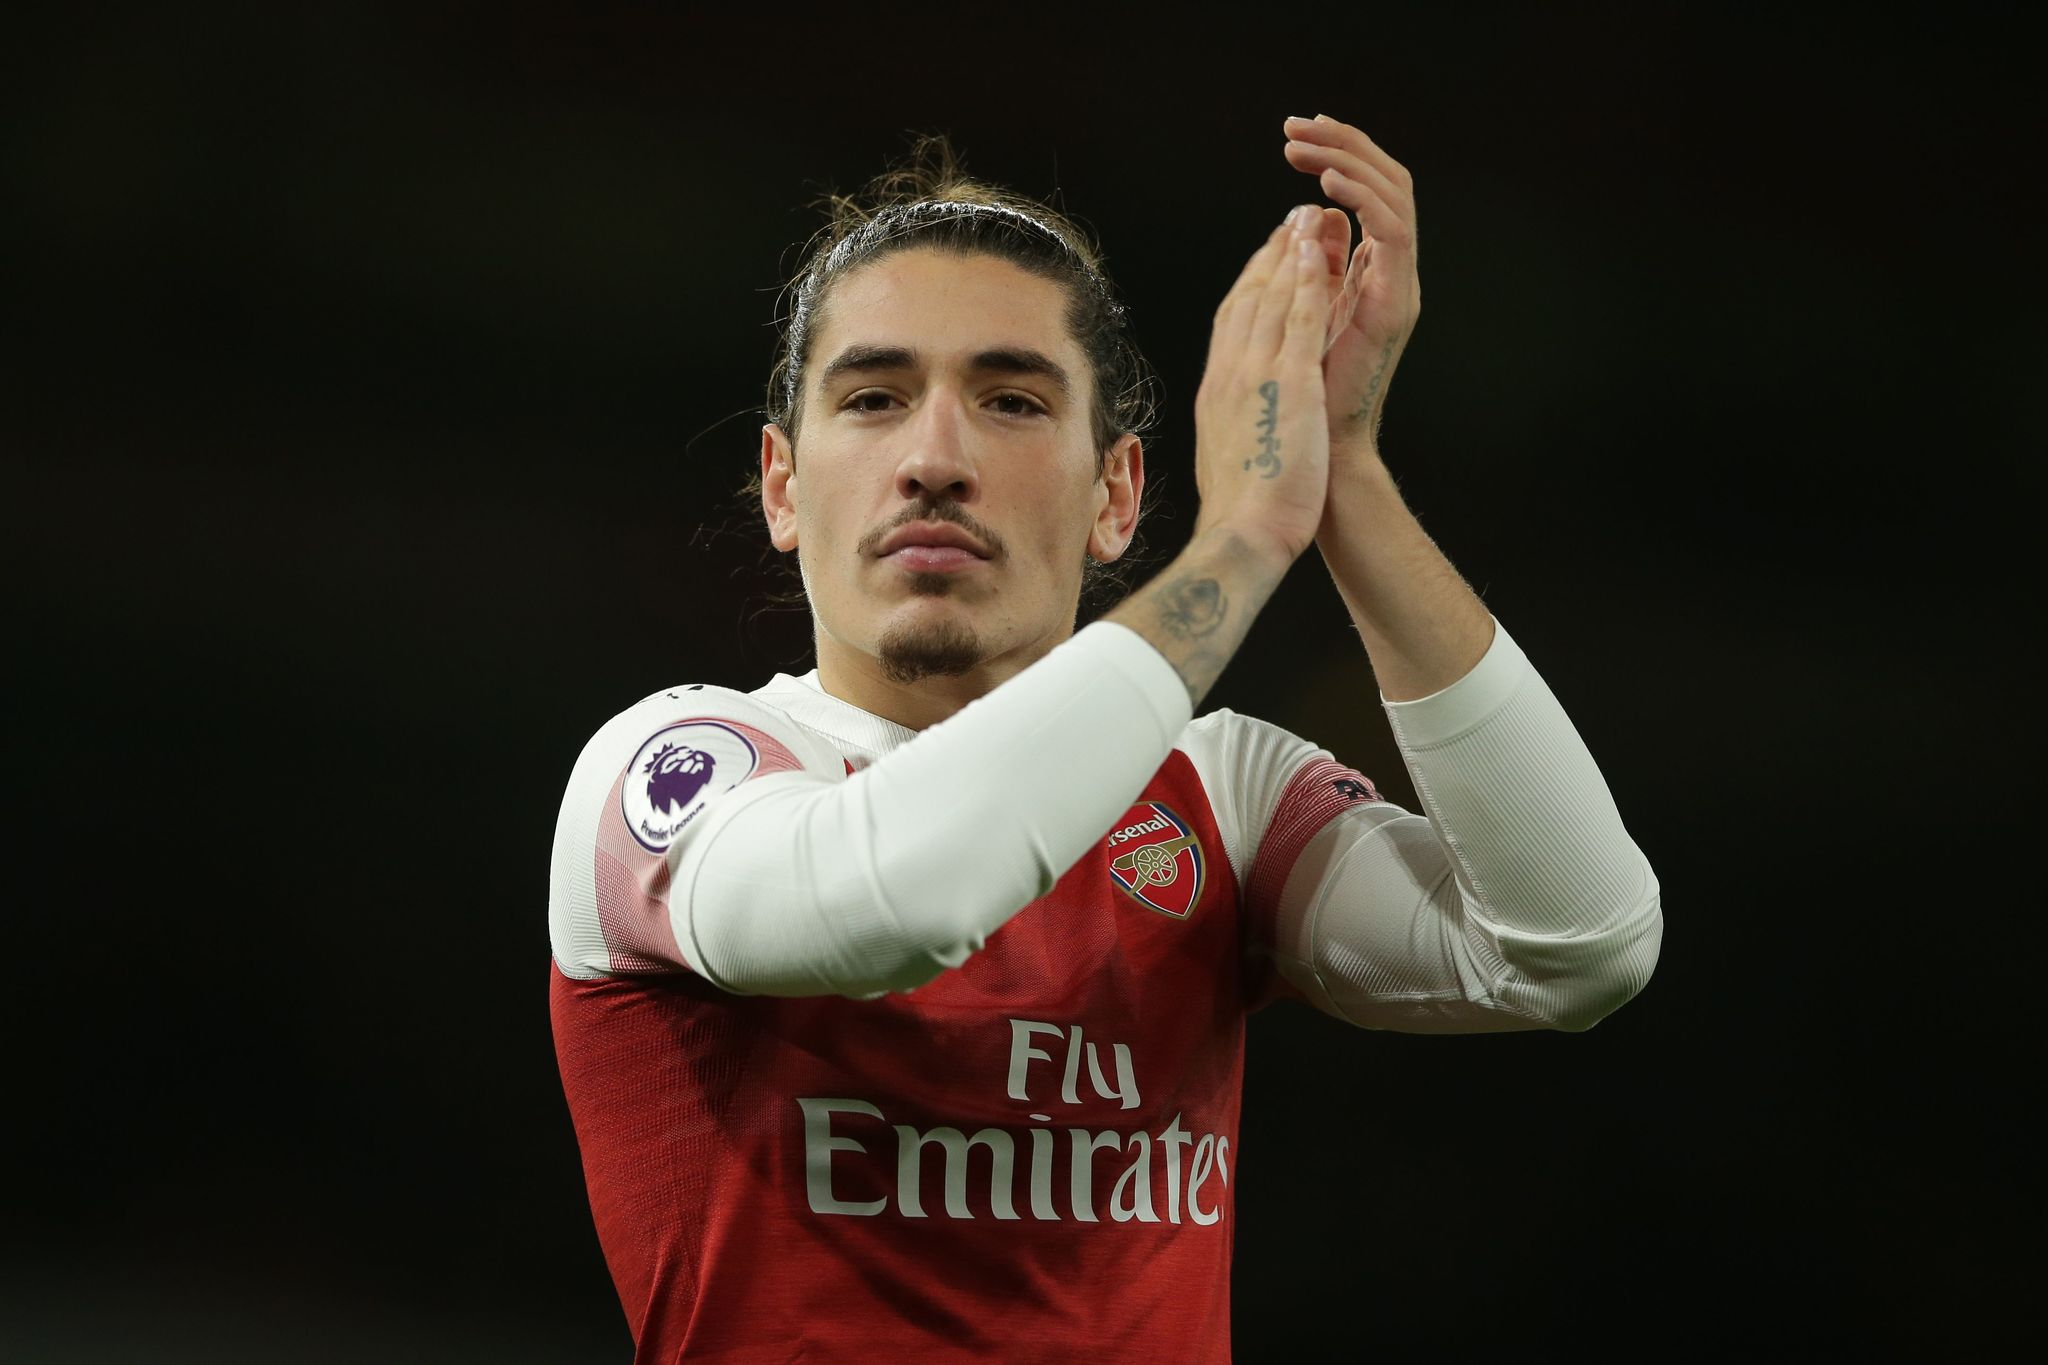 Arsenals Spanish defender Hector lt;HIT gt;Bellerin lt;/HIT gt; applauds supporters on the pitch after the English Premier League football match between Arsenal and Huddersfield Town at the Emirates Stadium in London on December 8, 2018. - Arsenal won the game 1-0. (Photo by Daniel LEAL-OLIVAS / AFP) / RESTRICTED TO EDITORIAL USE. No use with unauthorized audio, video, data, fixture lists, club/league logos or live services. Online in-match use limited to 120 images. An additional 40 images may be used in extra time. No video emulation. Social media in-match use limited to 120 images. An additional 40 images may be used in extra time. No use in betting publications, games or single club/league/player publications. /